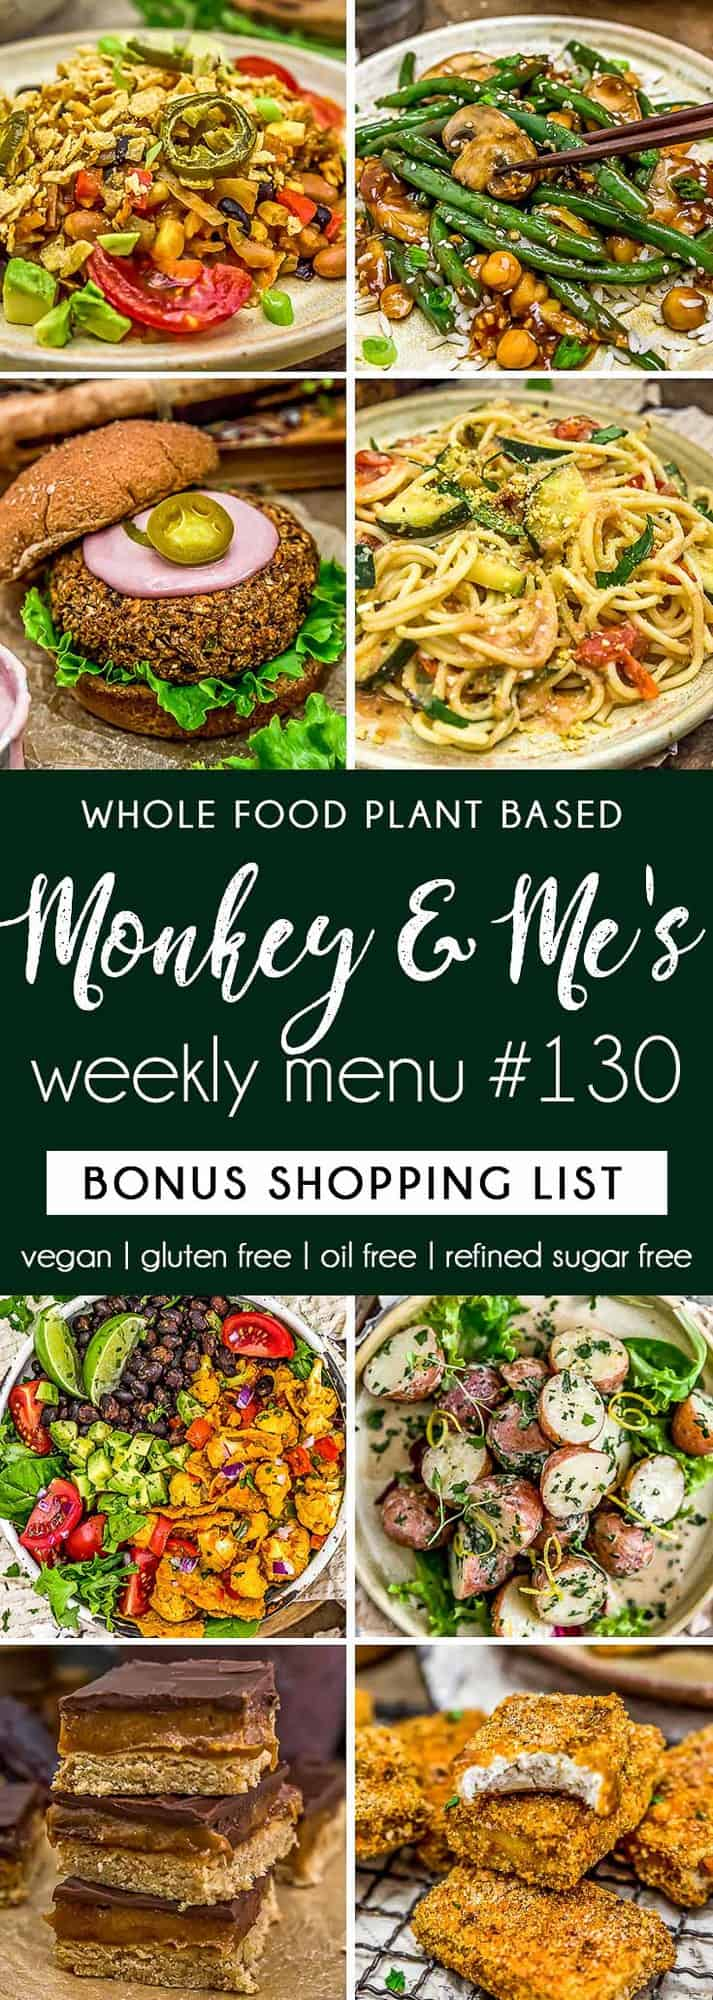 Monkey and Me's Menu 130 featuring 8 recipes